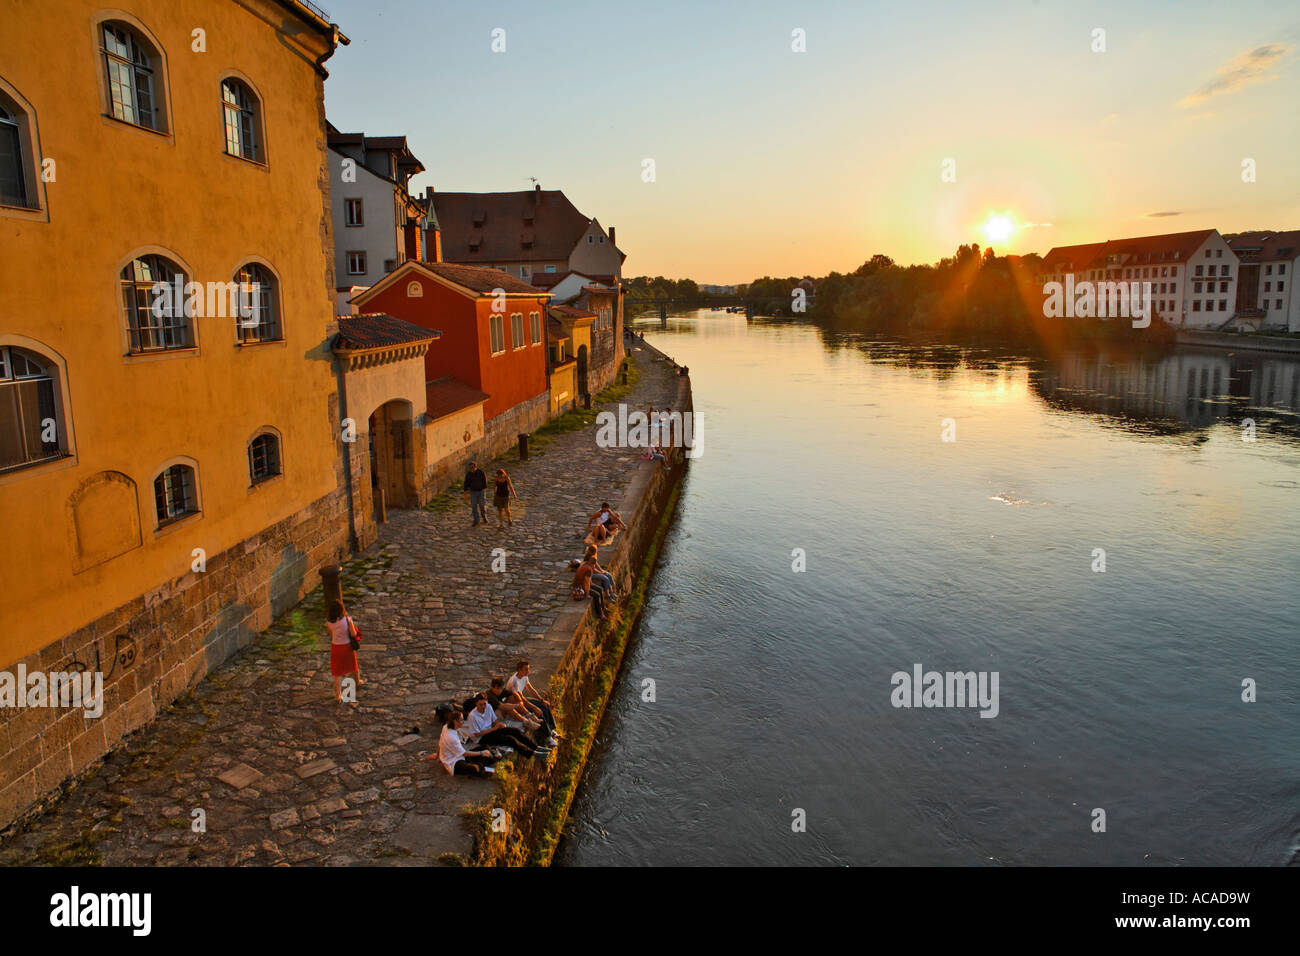 Weinlaende at Danube river, Regensburg, Upper Palatinate, Bavaria, Germany Stock Photo